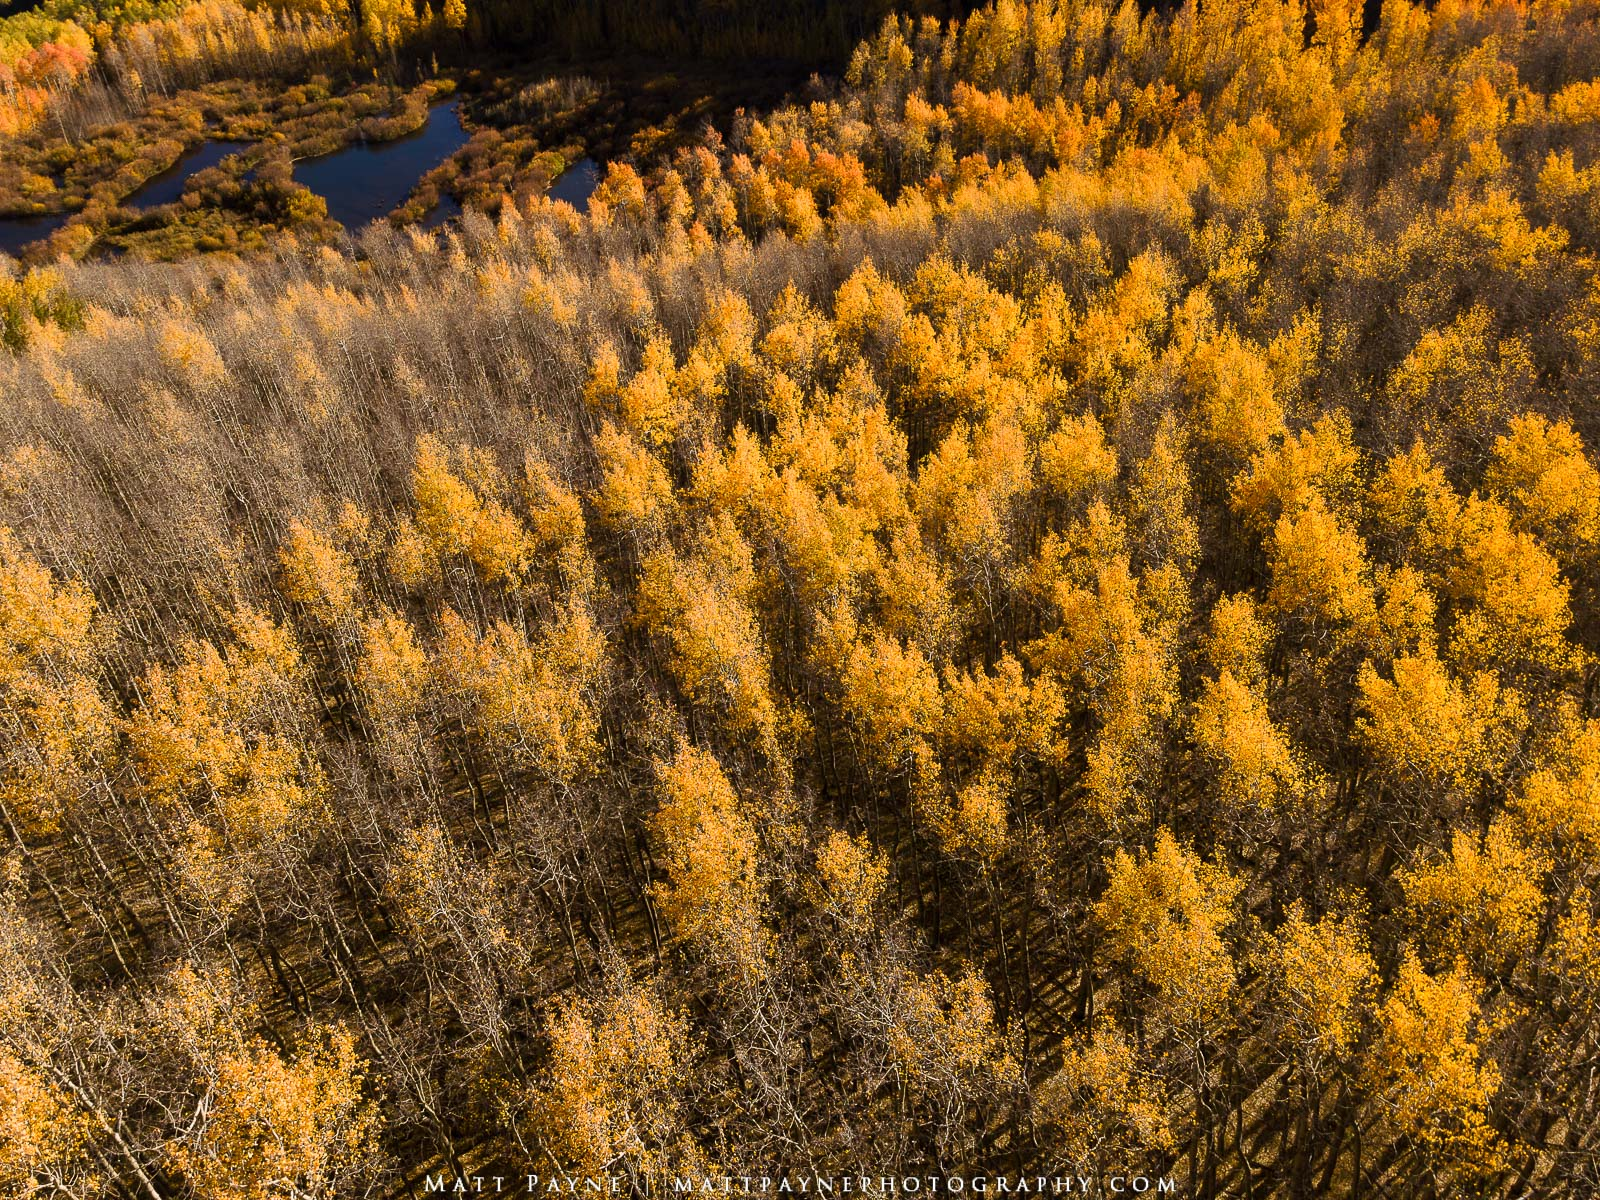 A golden carpet of autumn  / fall foliage near a set of beaver ponds in Colorado showcases the amazing foliage and colorful aspen...